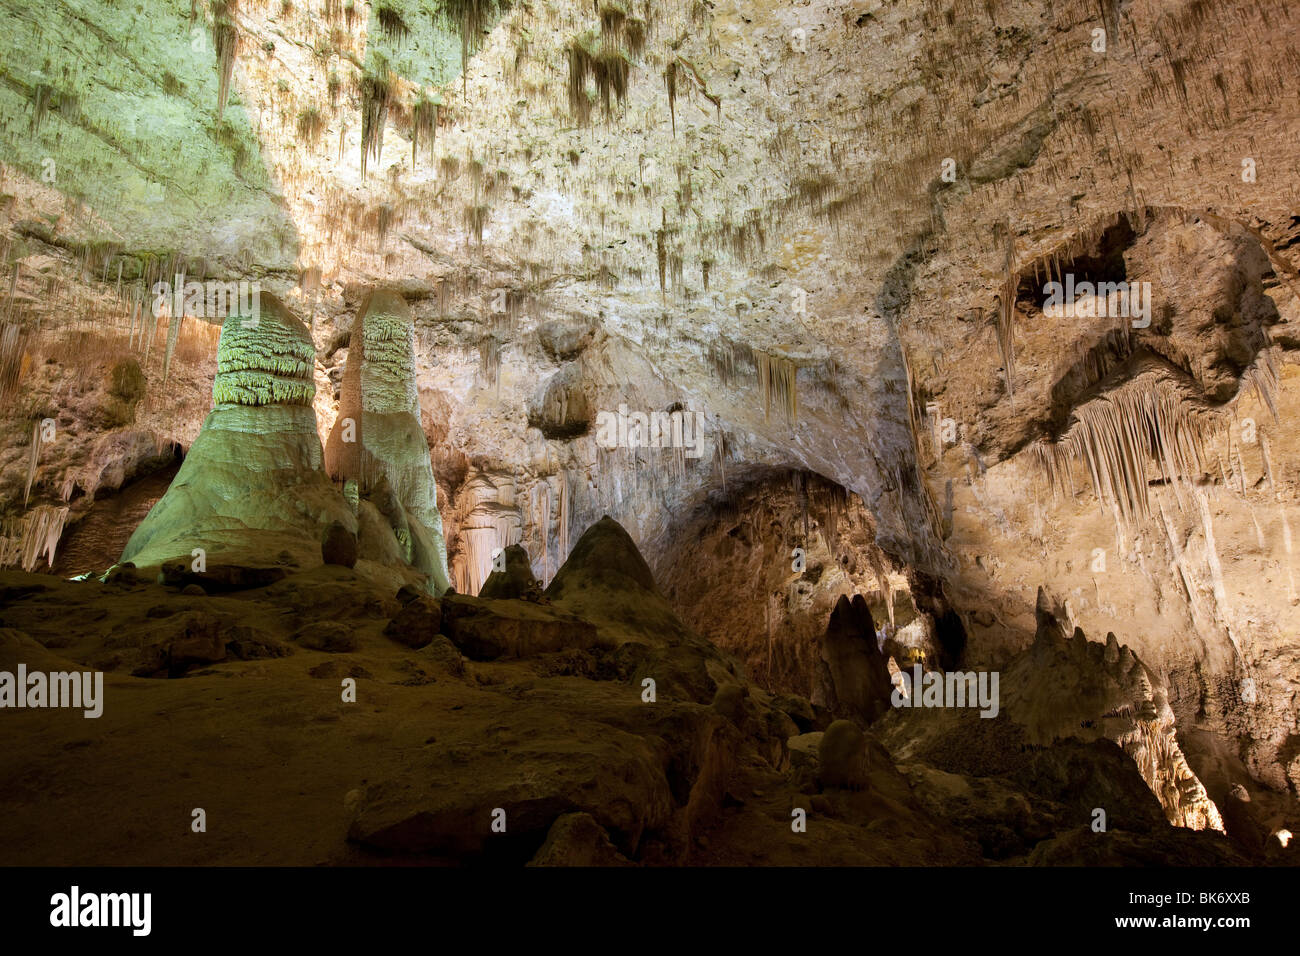 Inside a Cave, Carlsbad Caverns, New Mexico - Stock Image